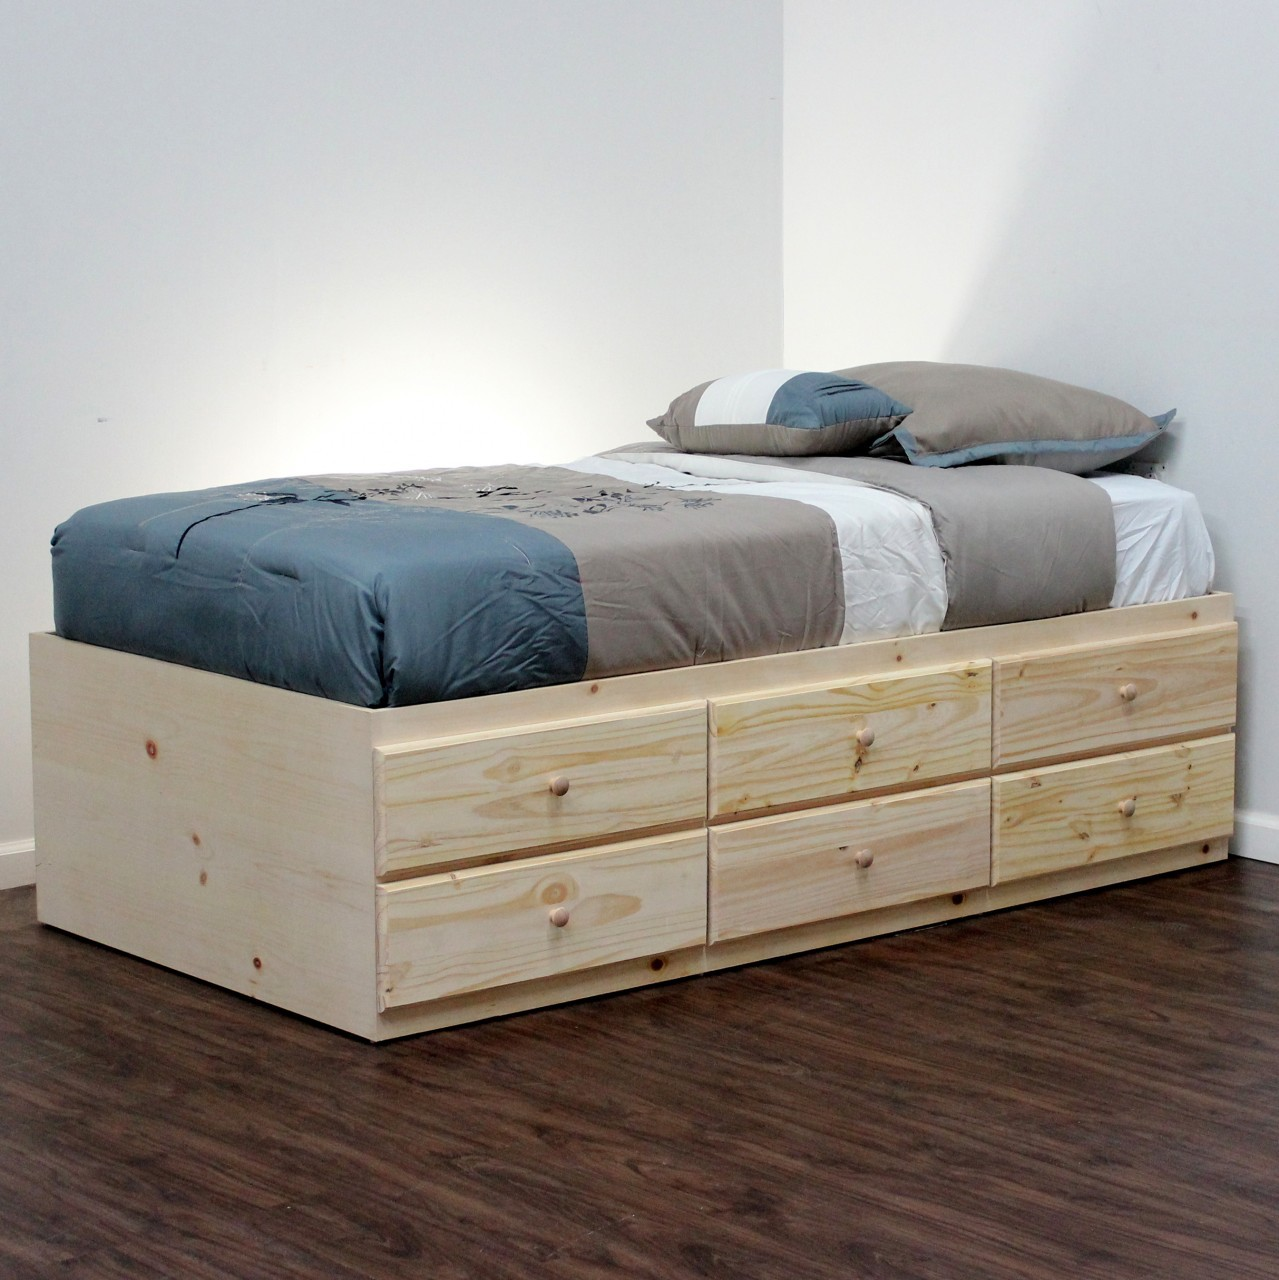 Simple Wooden Twin Bed With Drawers Underneath And Grey Blue